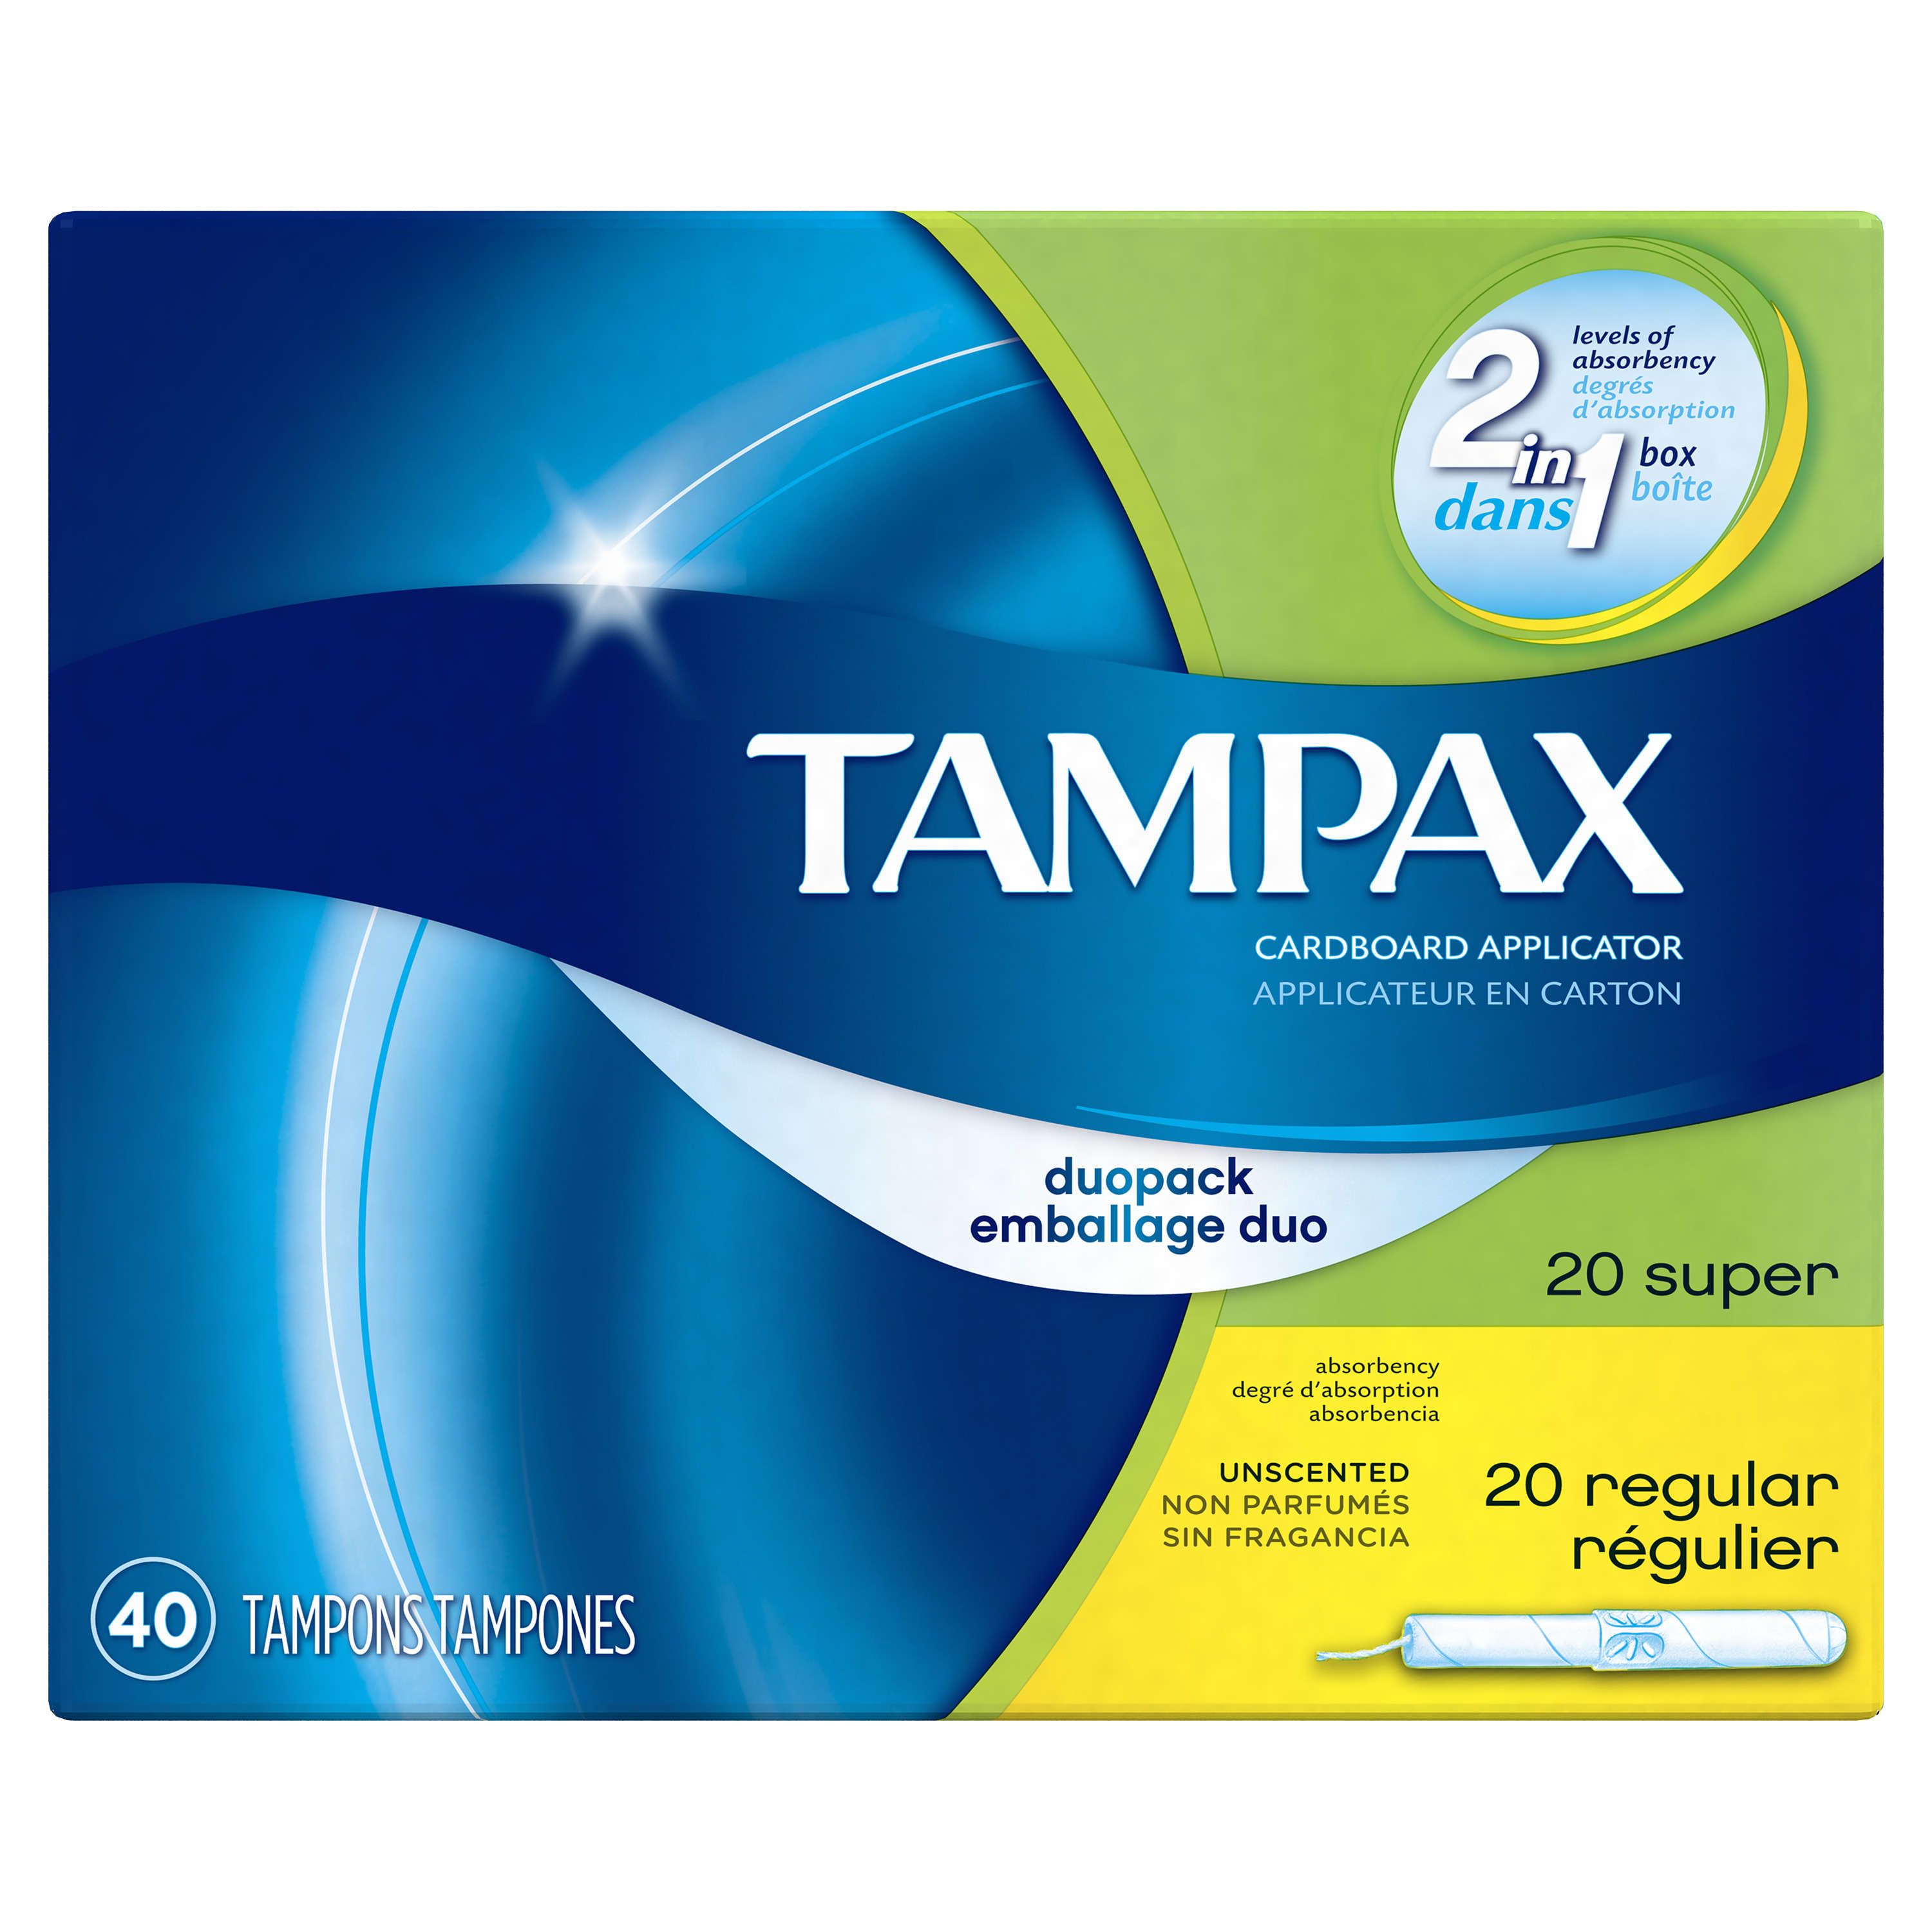 Tampax Cardboard Duopack (Regular/Super) Tampons, Unscented 40 count